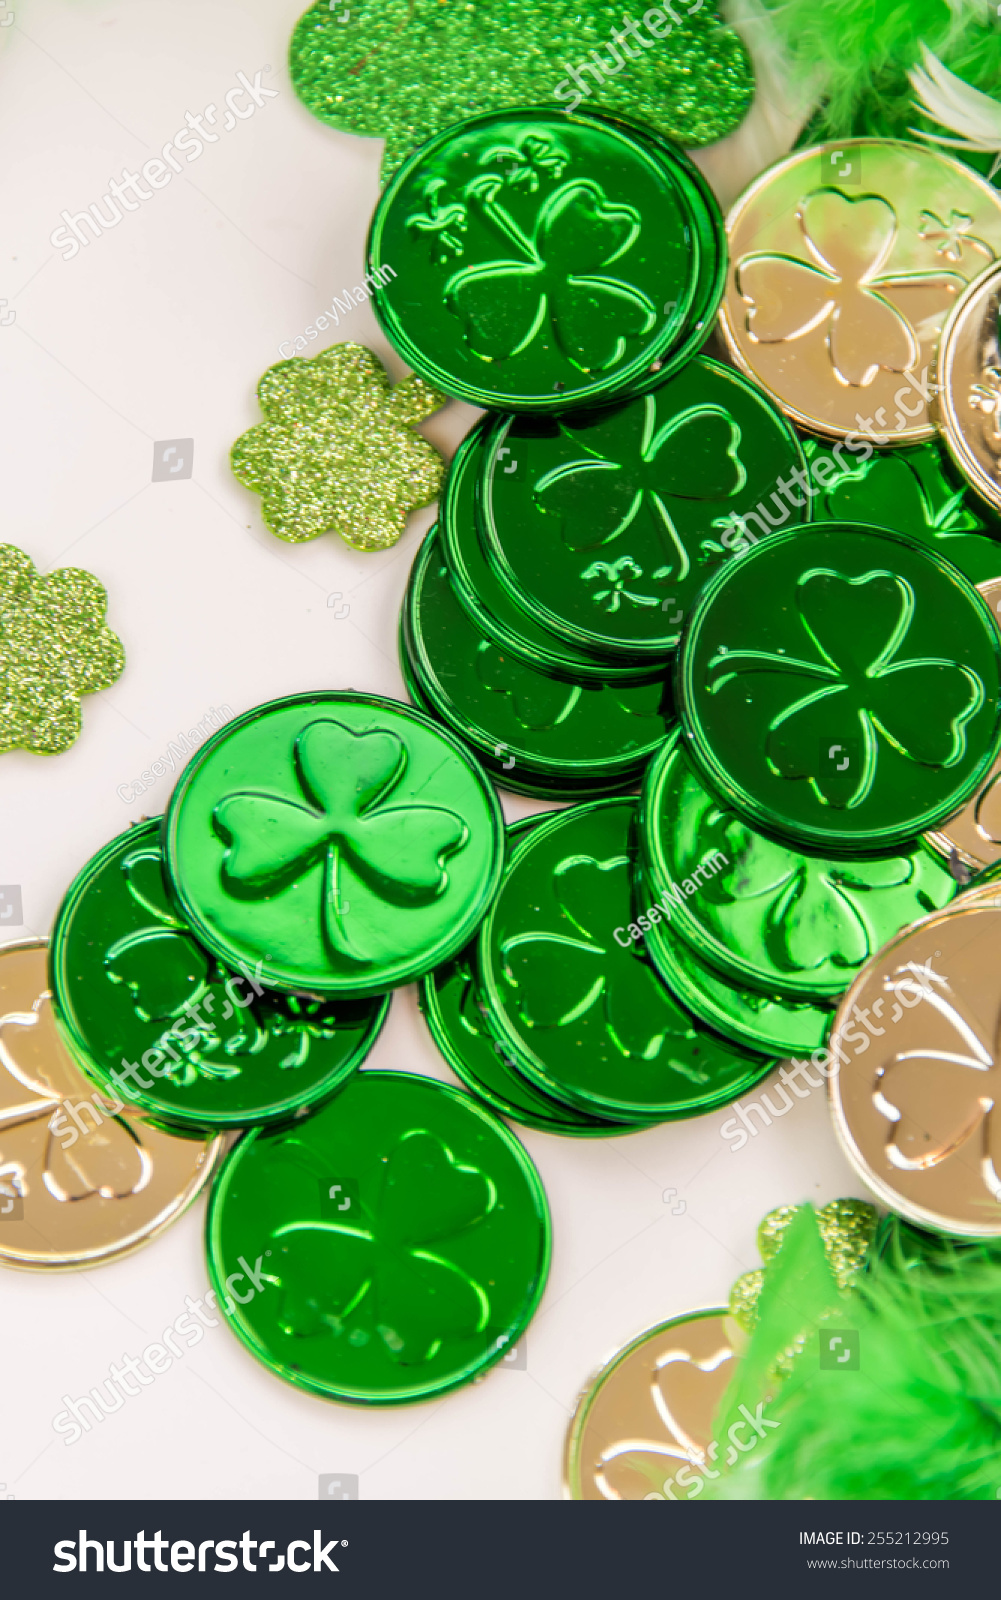 st patricks day decorations gold coins stock photo 255212995 shutterstock. Black Bedroom Furniture Sets. Home Design Ideas